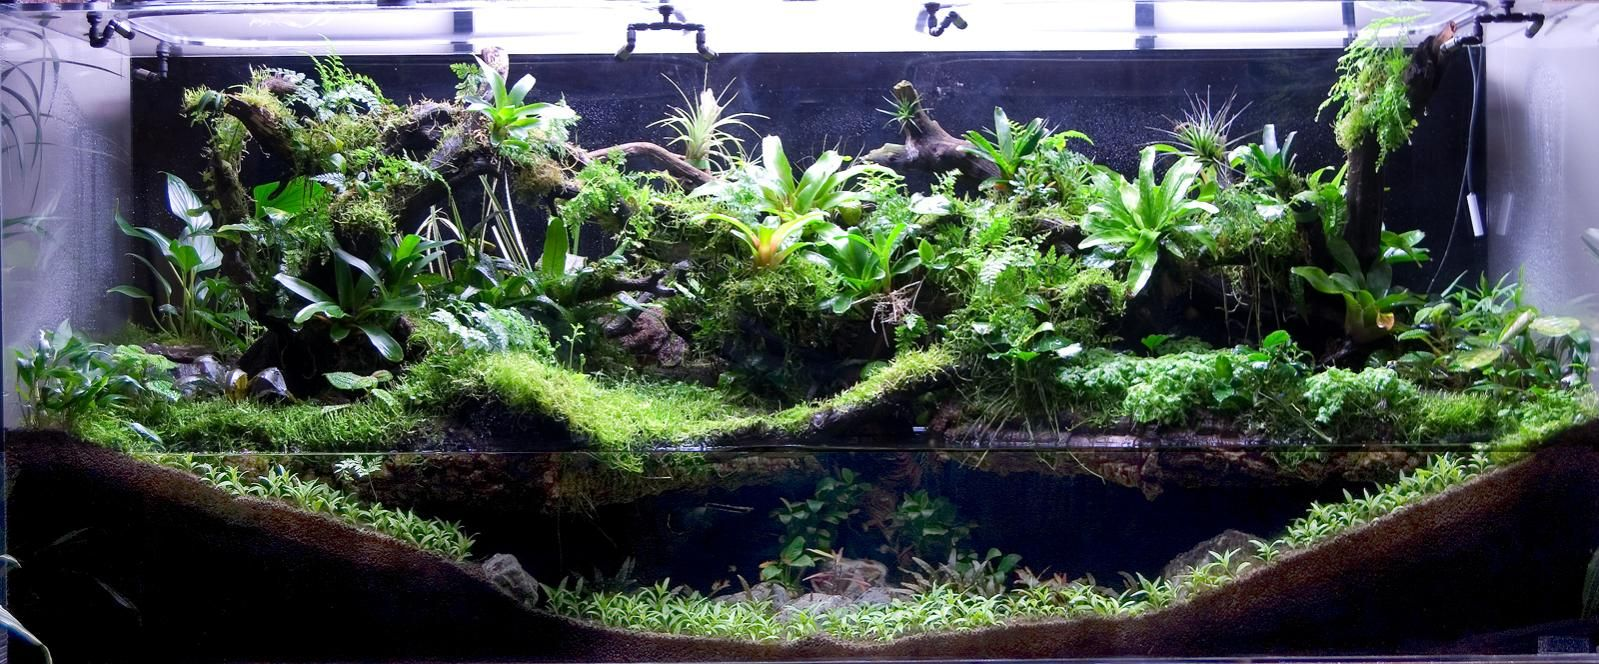 how to build a paludarium tank